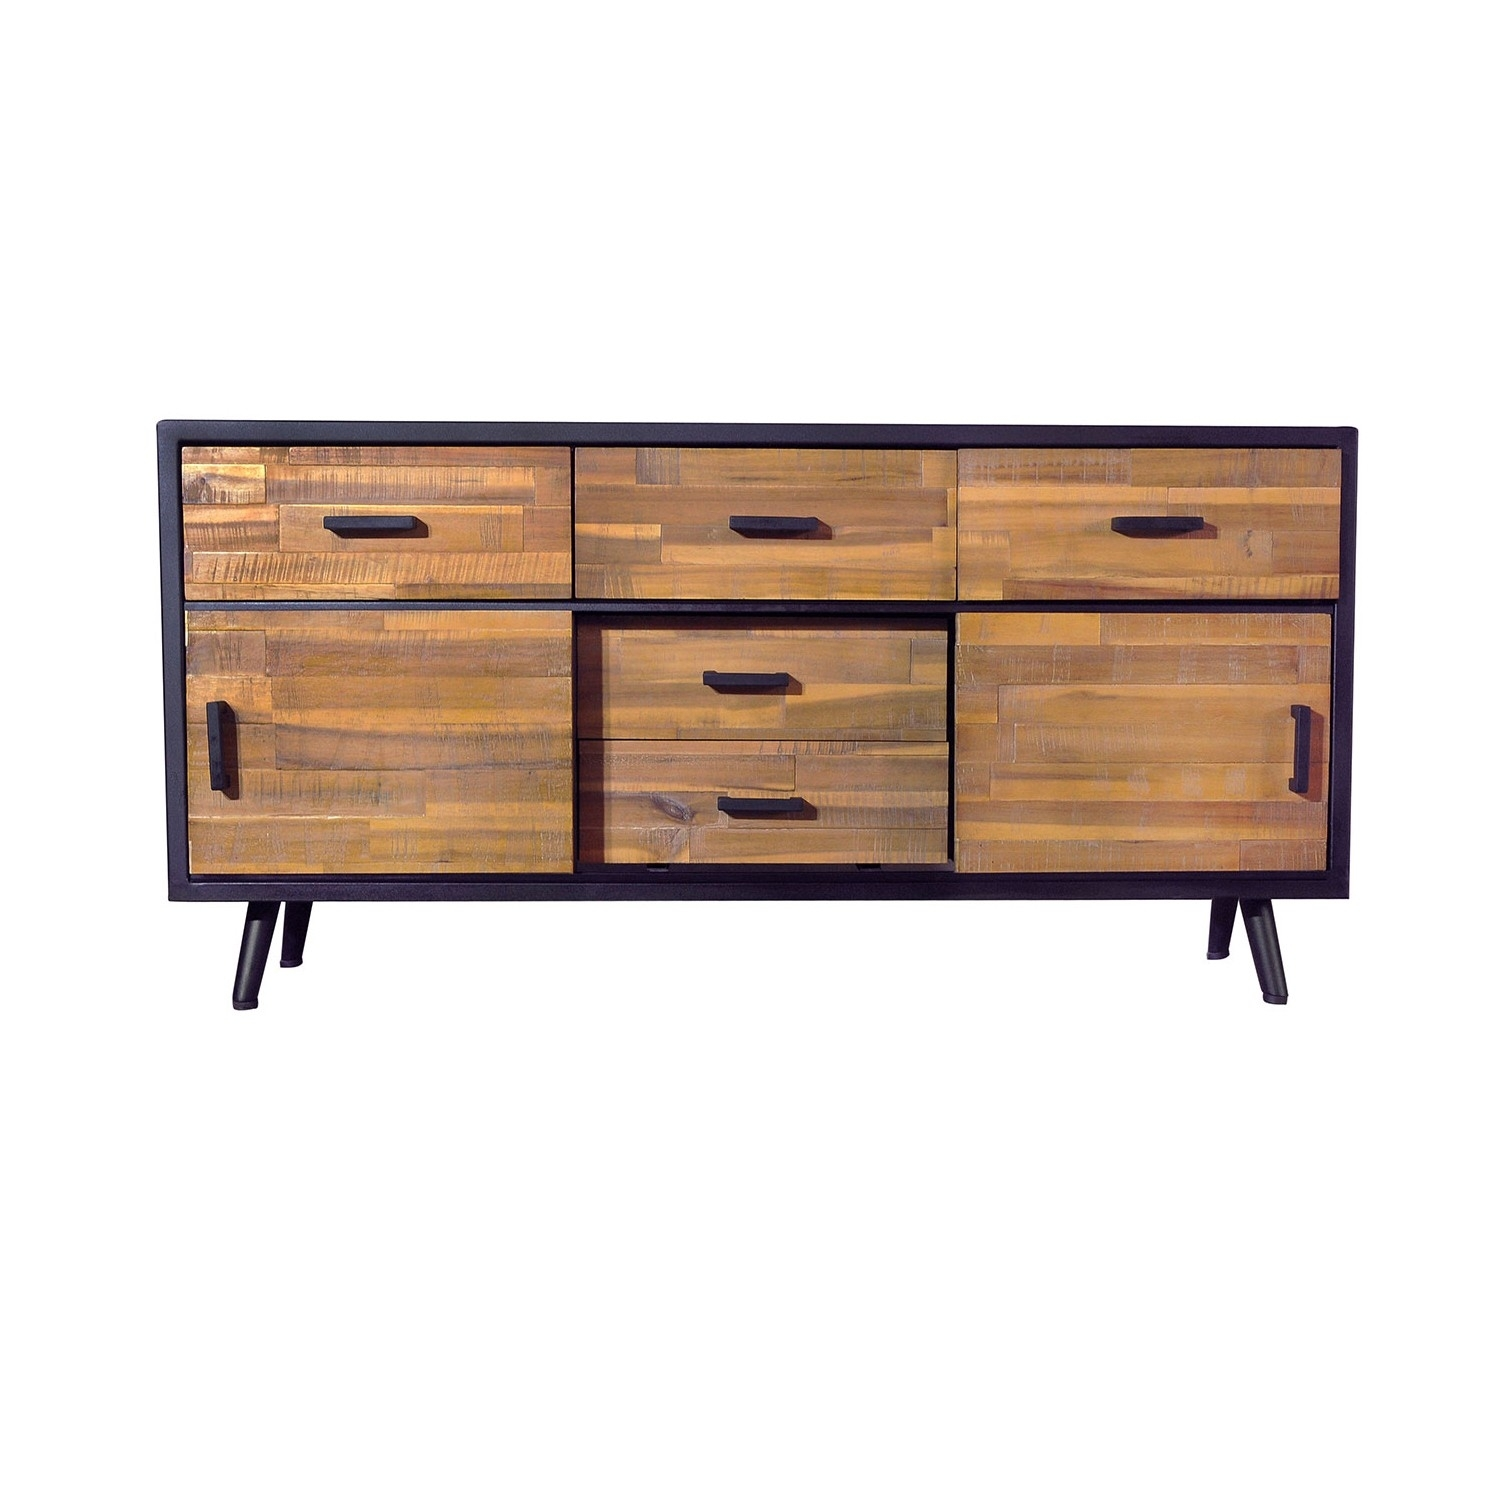 Buffets, Cabinets And Sideboards | Bois & Cuir with regard to Metal Framed Reclaimed Wood Sideboards (Image 5 of 30)